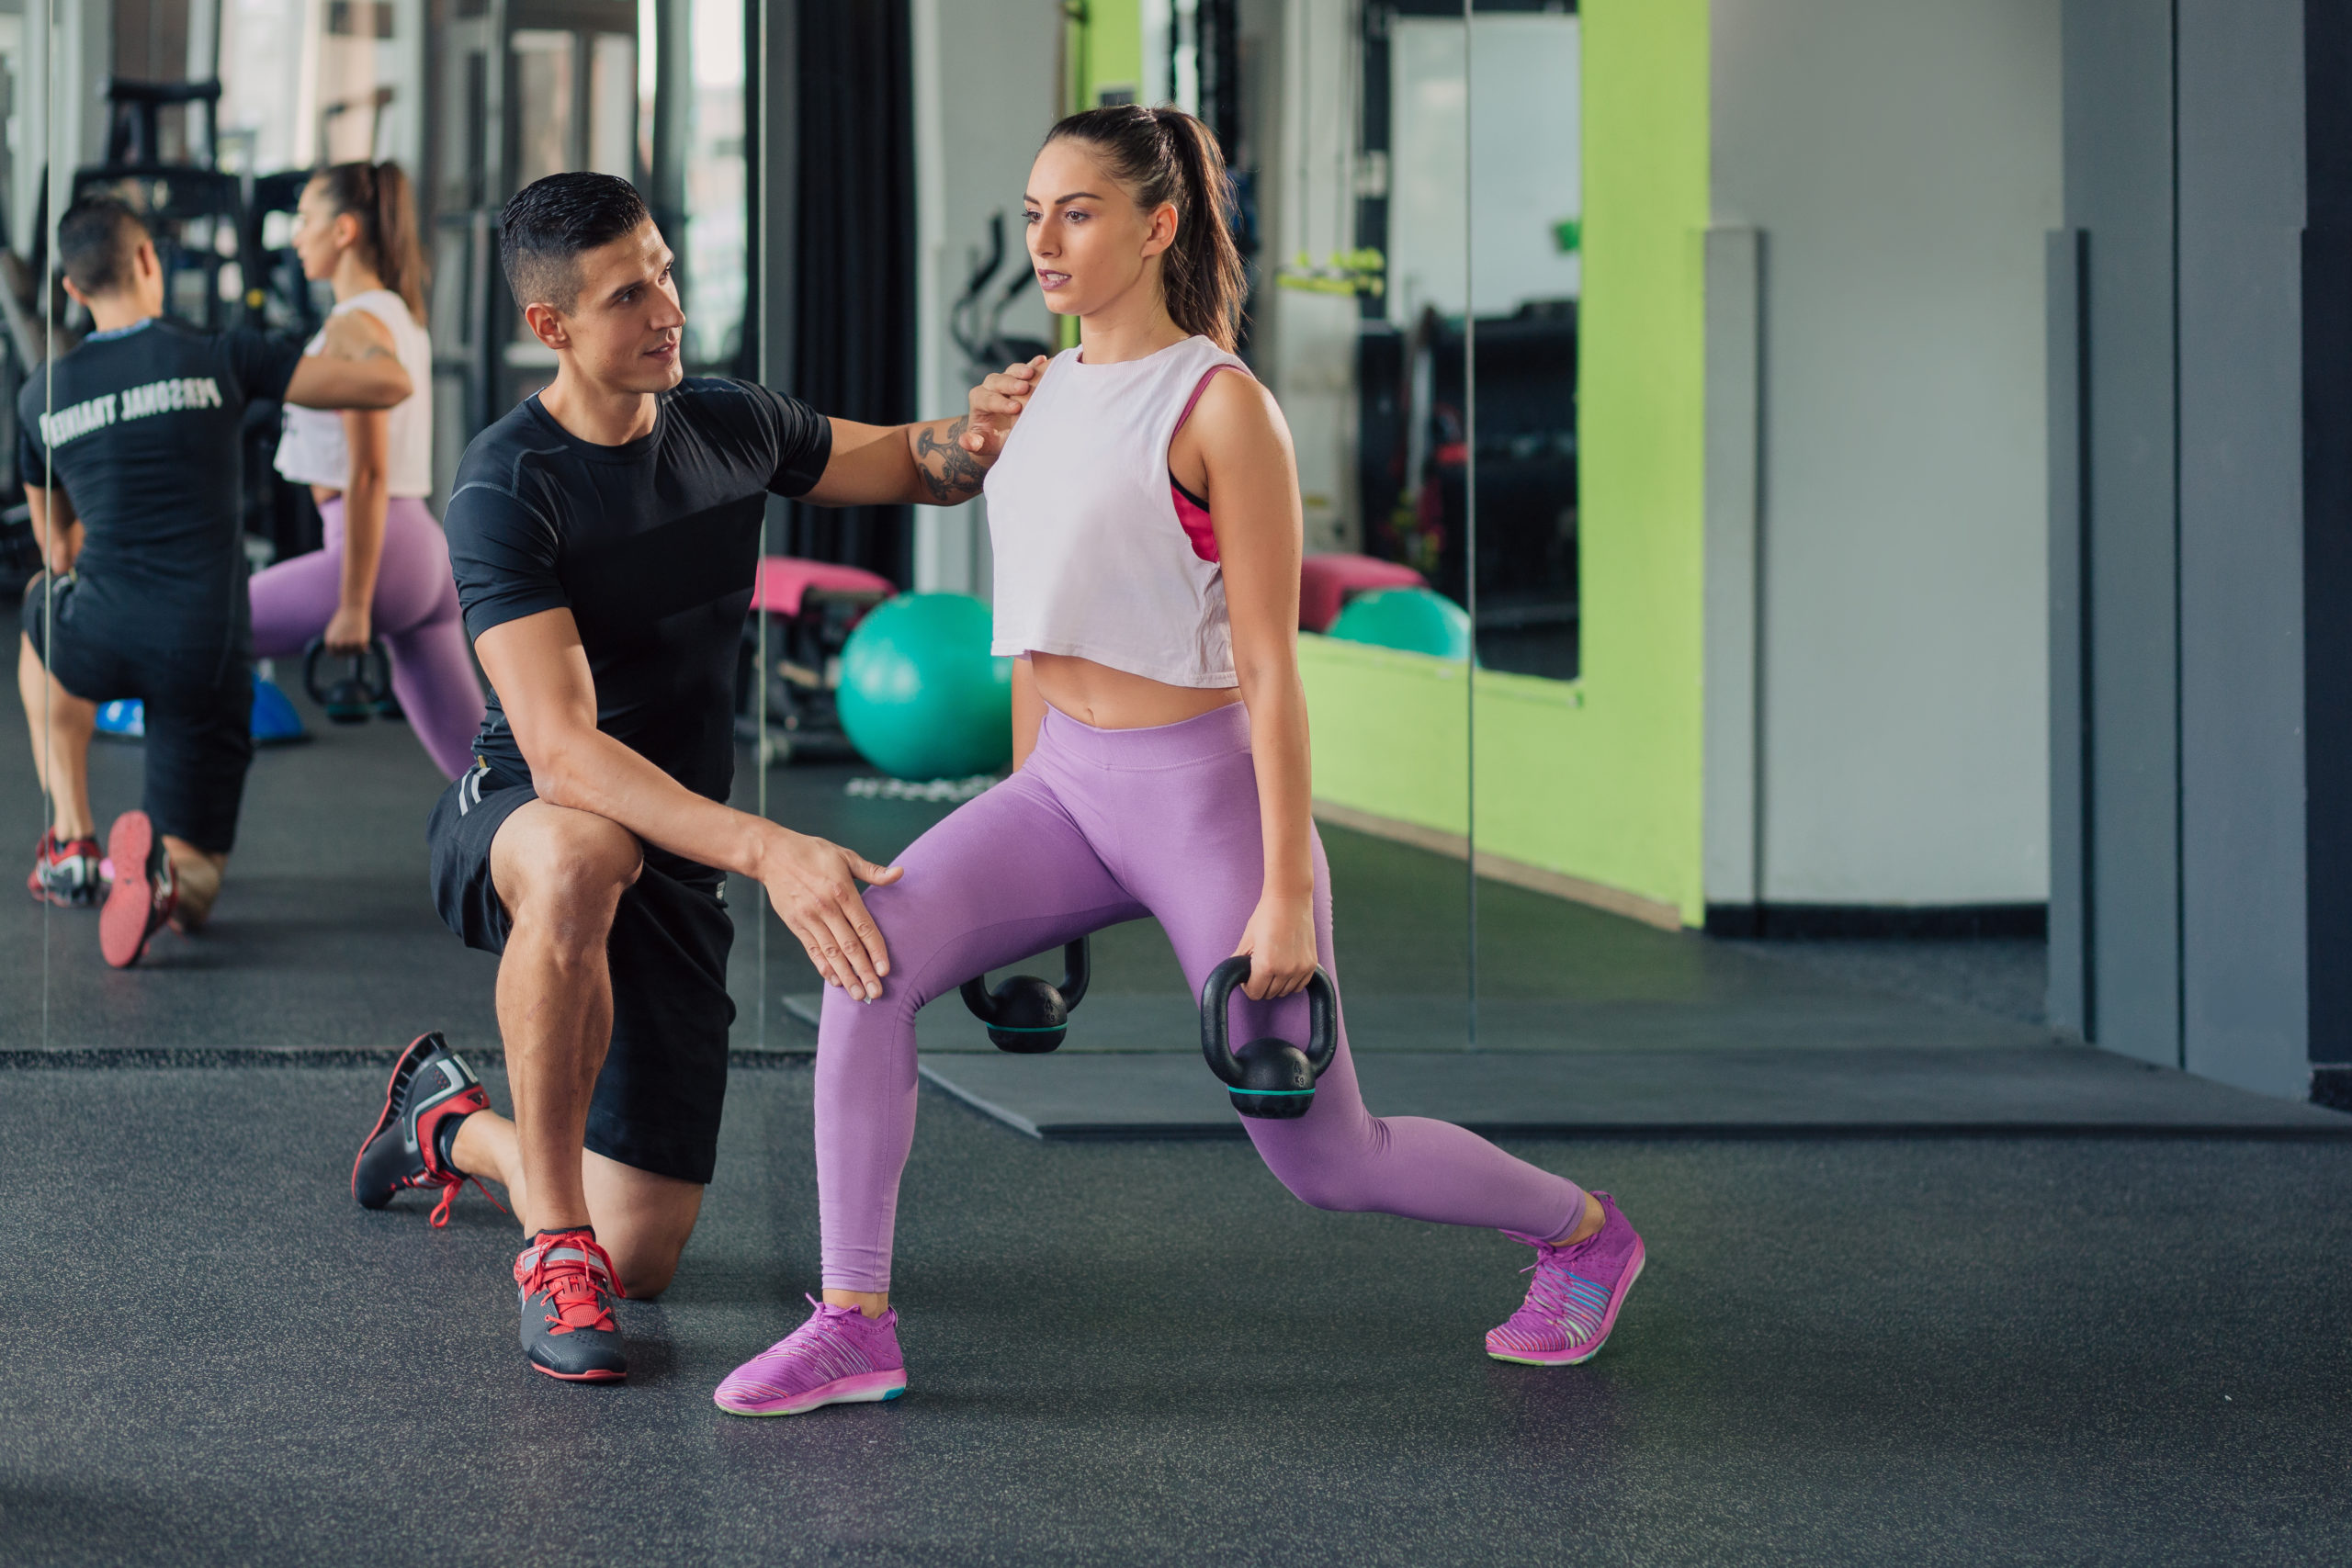 Young woman with male personal trainer in the gym doing kettlebell lunges